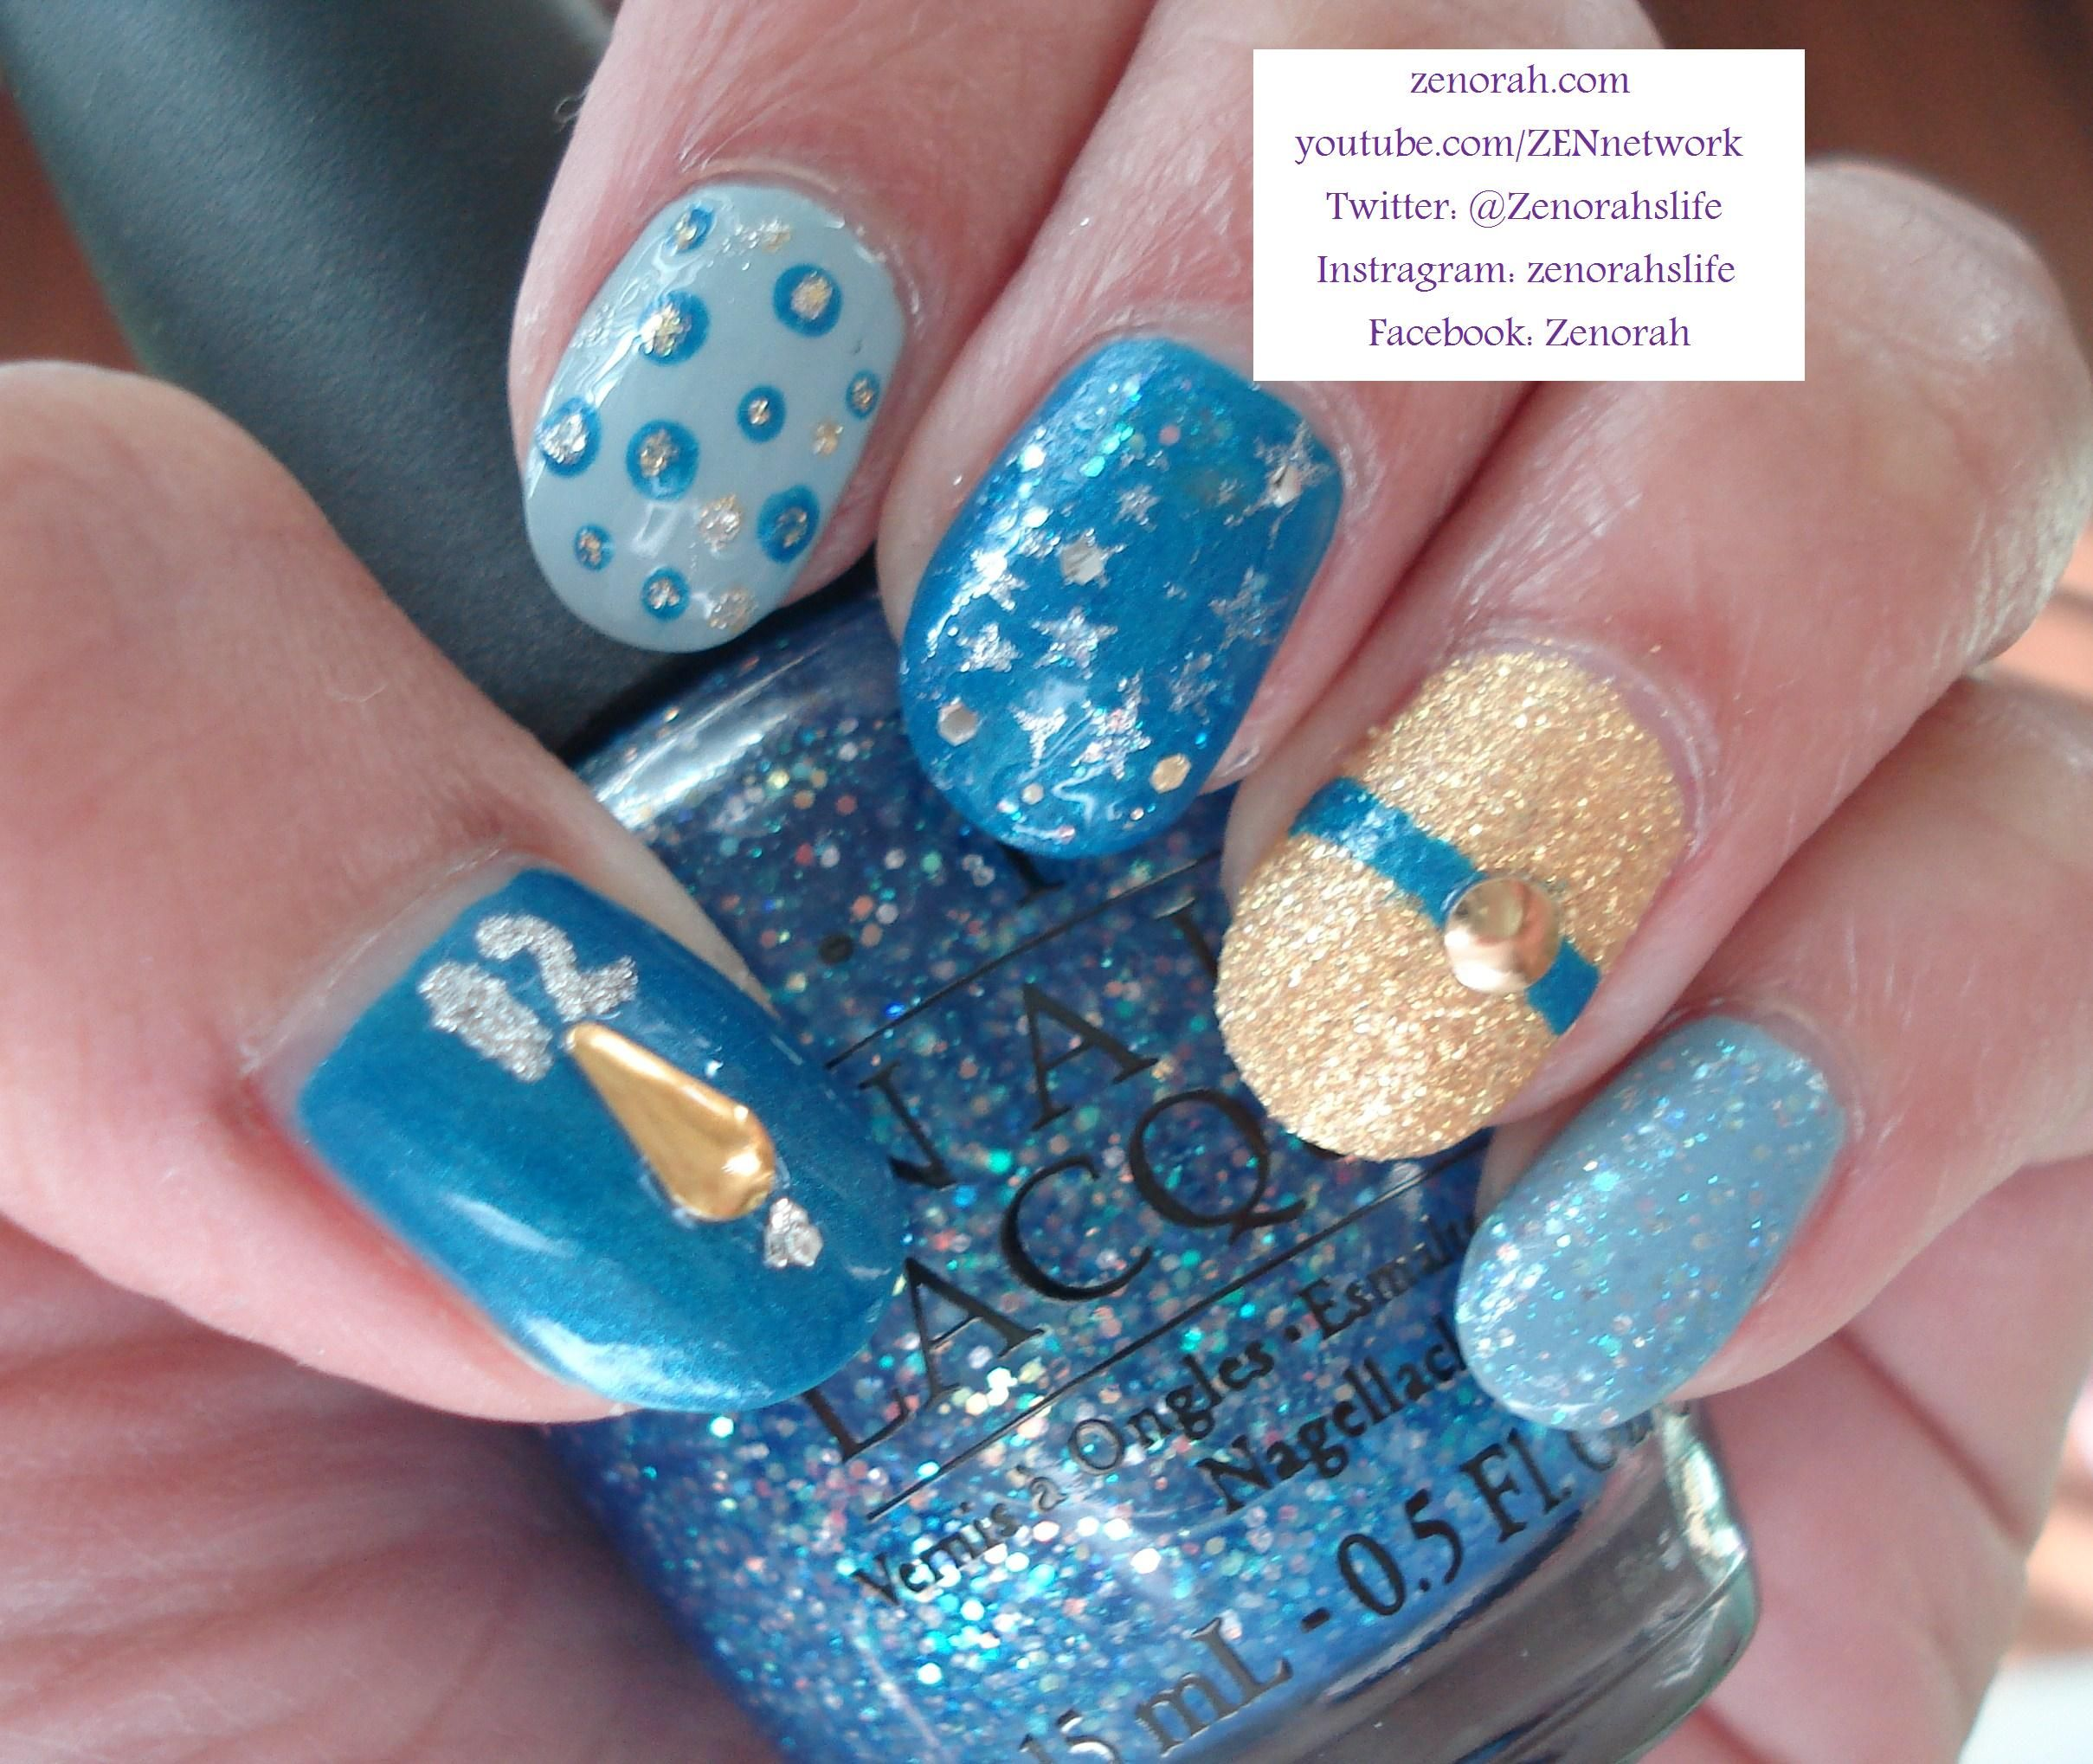 cinderella nail design - Google Search   Inspired by the new ...